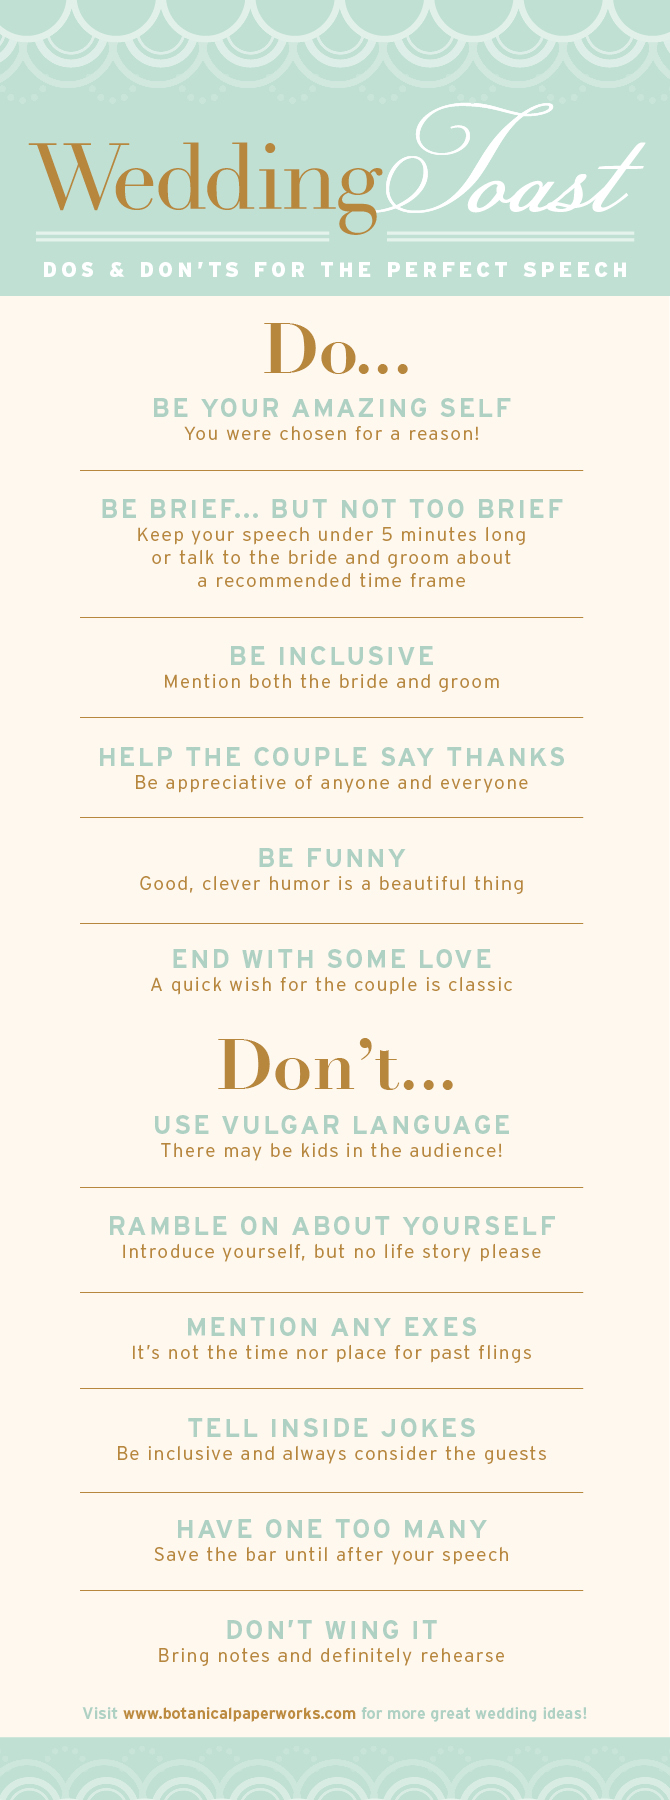 {free printable} Wedding Toast Do's and Don'ts - Ensure your wedding guests remember your speeches for the right reasons.